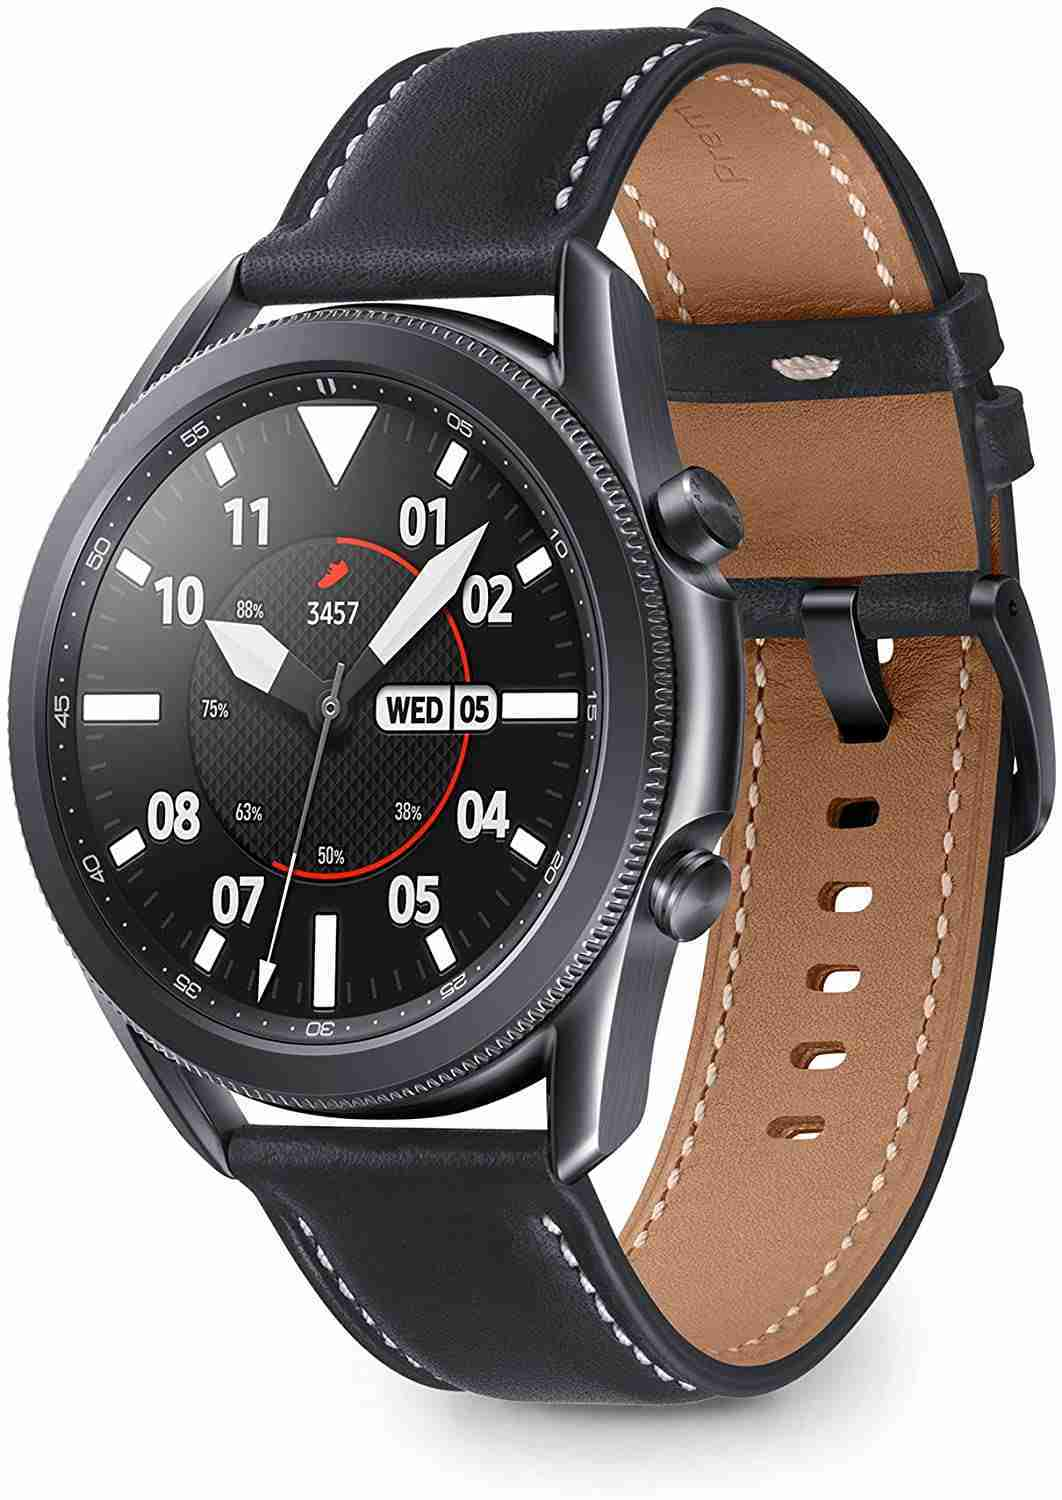 Samsung Galaxy Watch3 Smartwatch